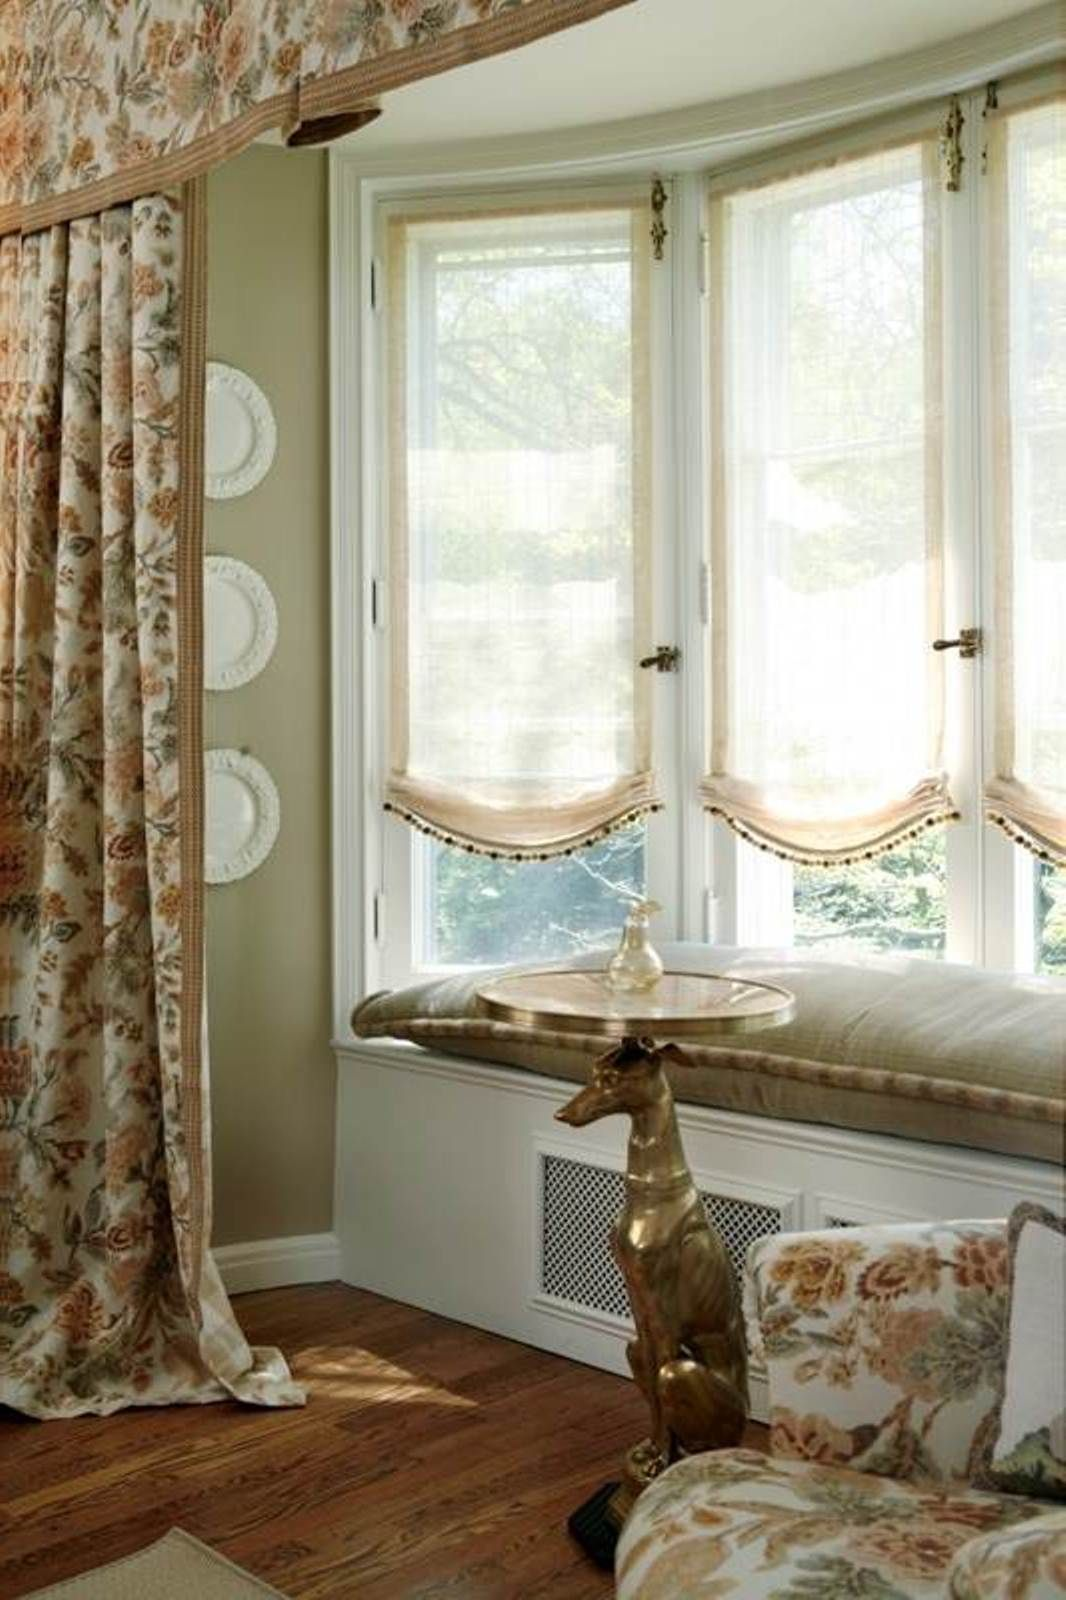 More Ideas Below Diy Bay Windows Exterior Ideas Nook Bay Windows Seat And Plants Dini Bay Window Treatments Window Treatments Living Room Curtains Living Room